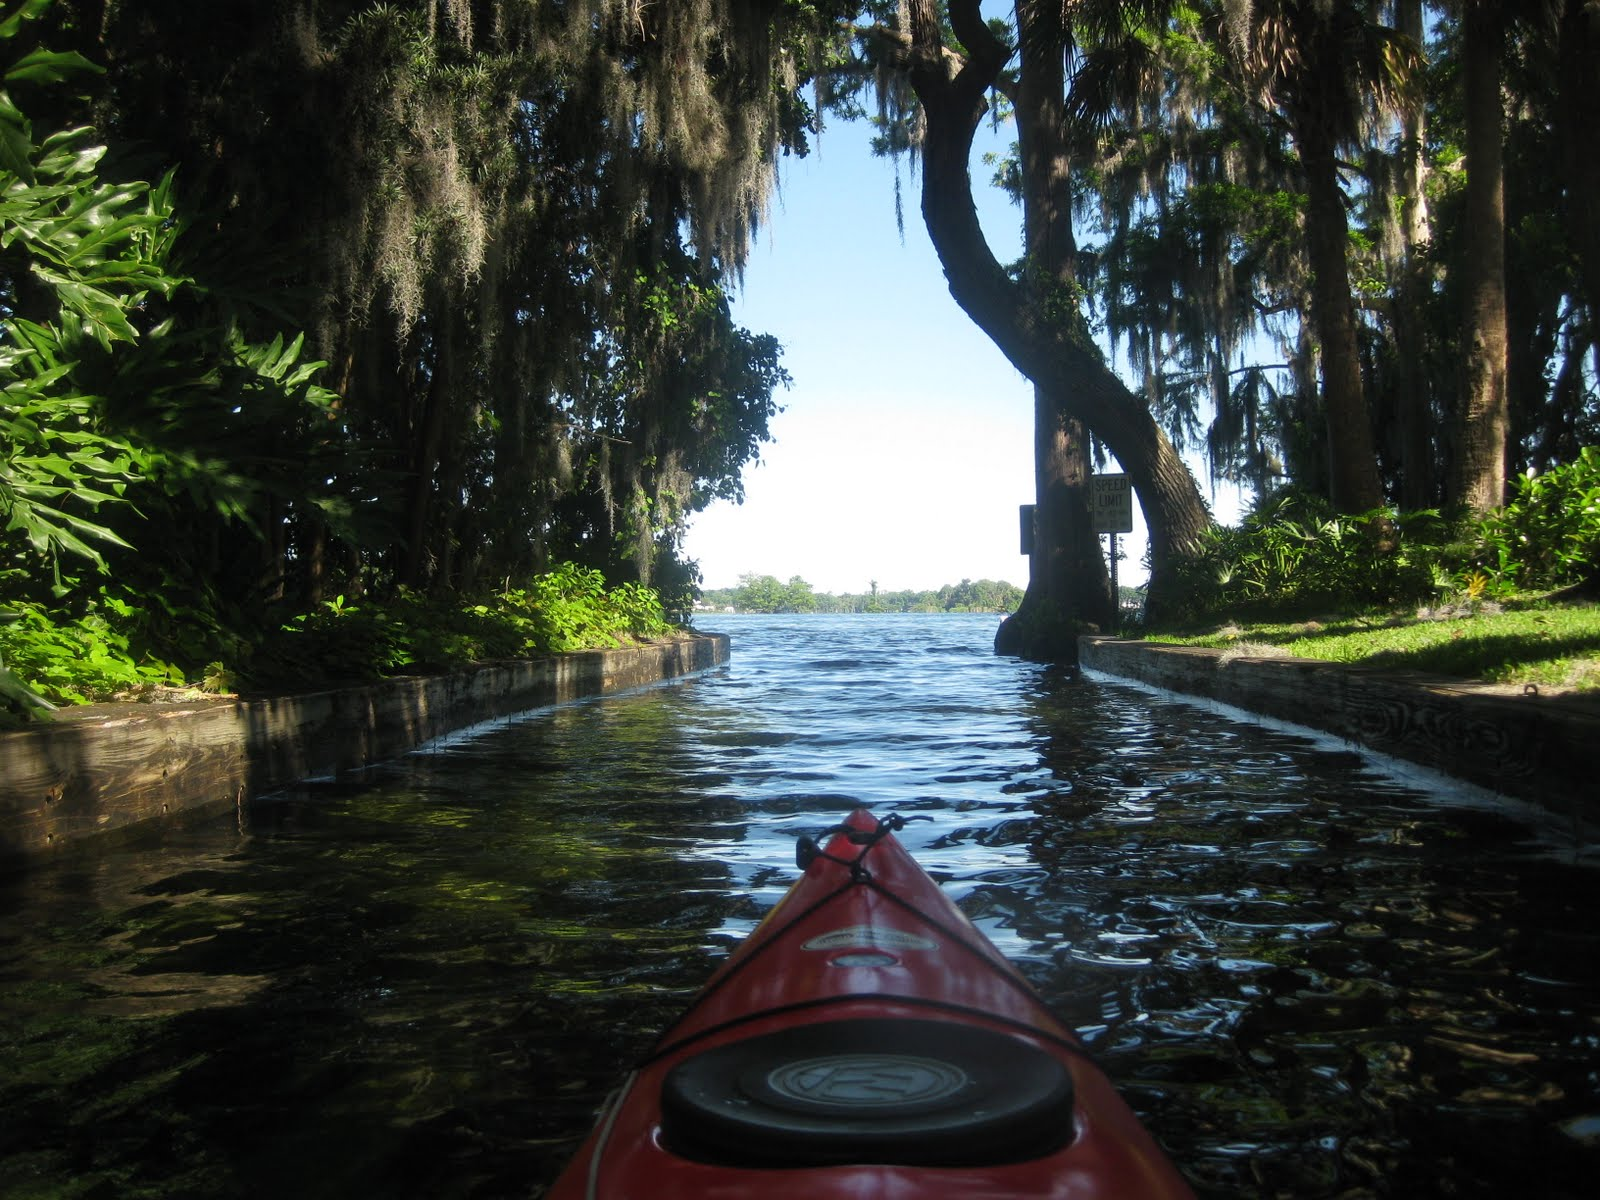 City of Winter Park Looks to Add New Place to Kayak with 55 Acre Wetland Purchase